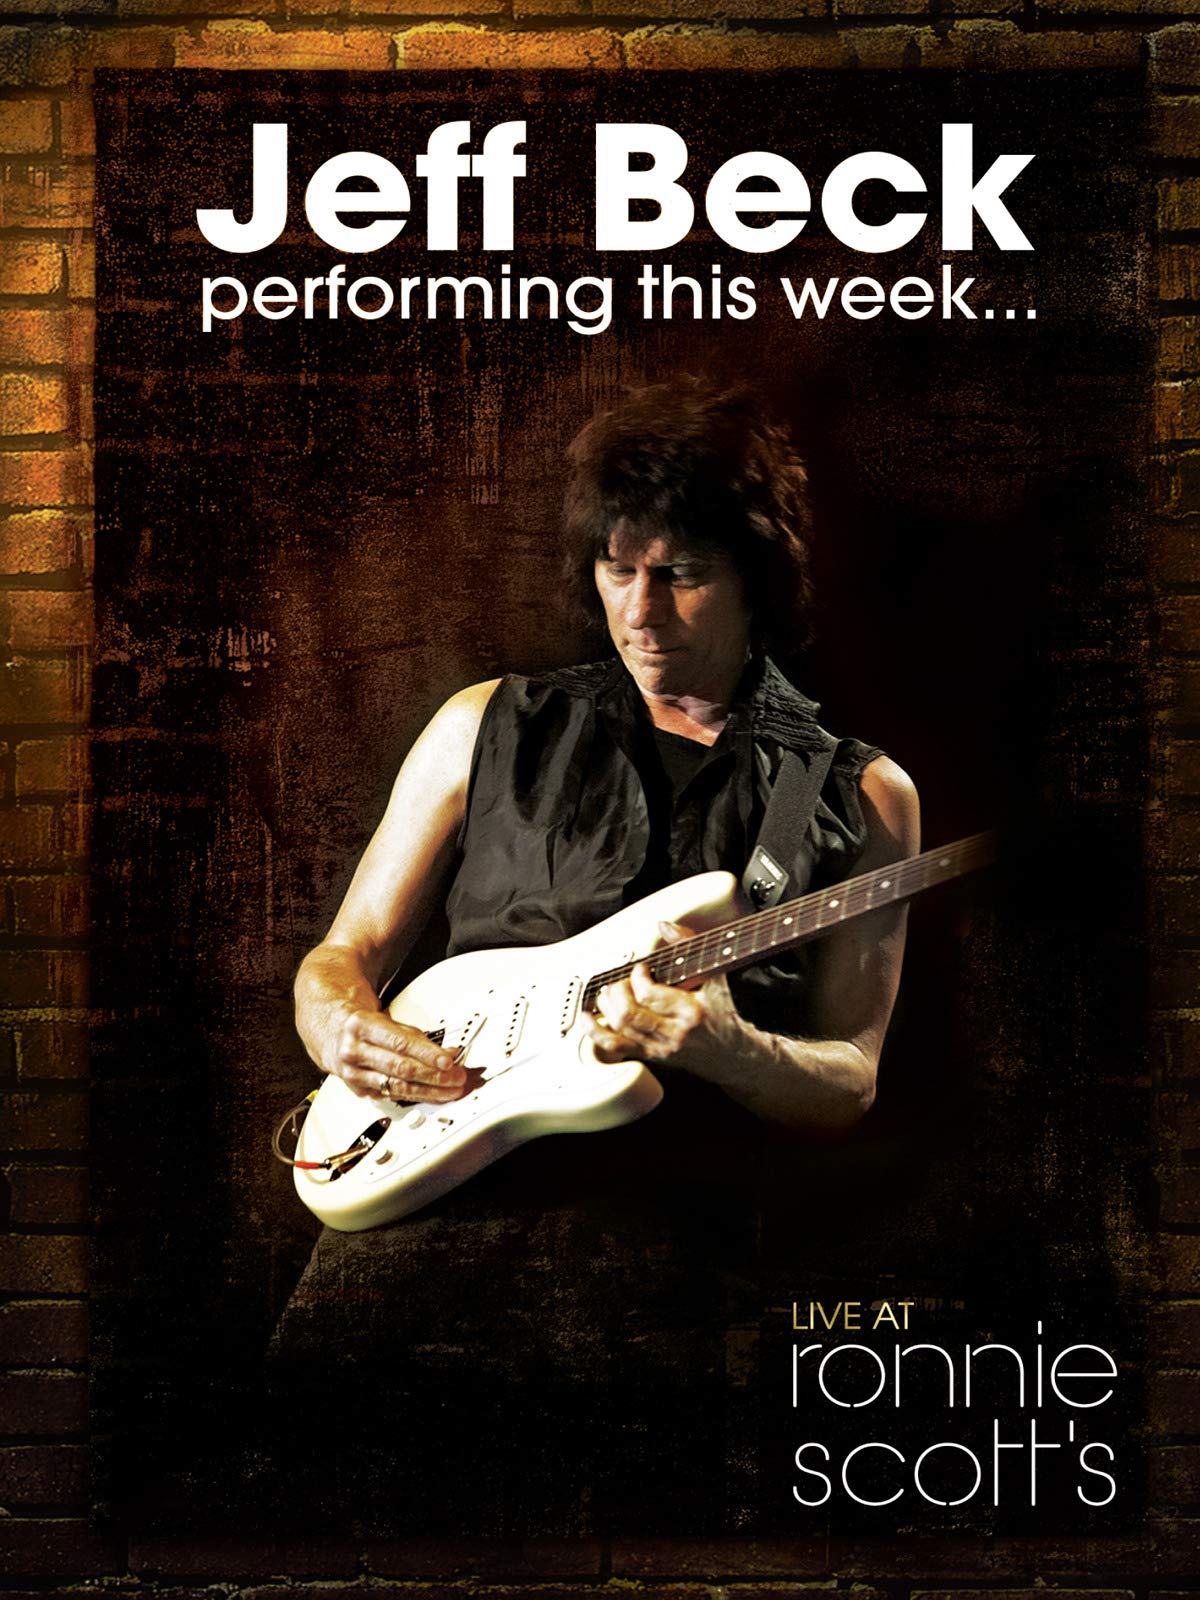 Jeff Beck - Performing This Week. Live At Ronnie Scott's on Amazon Prime Video UK